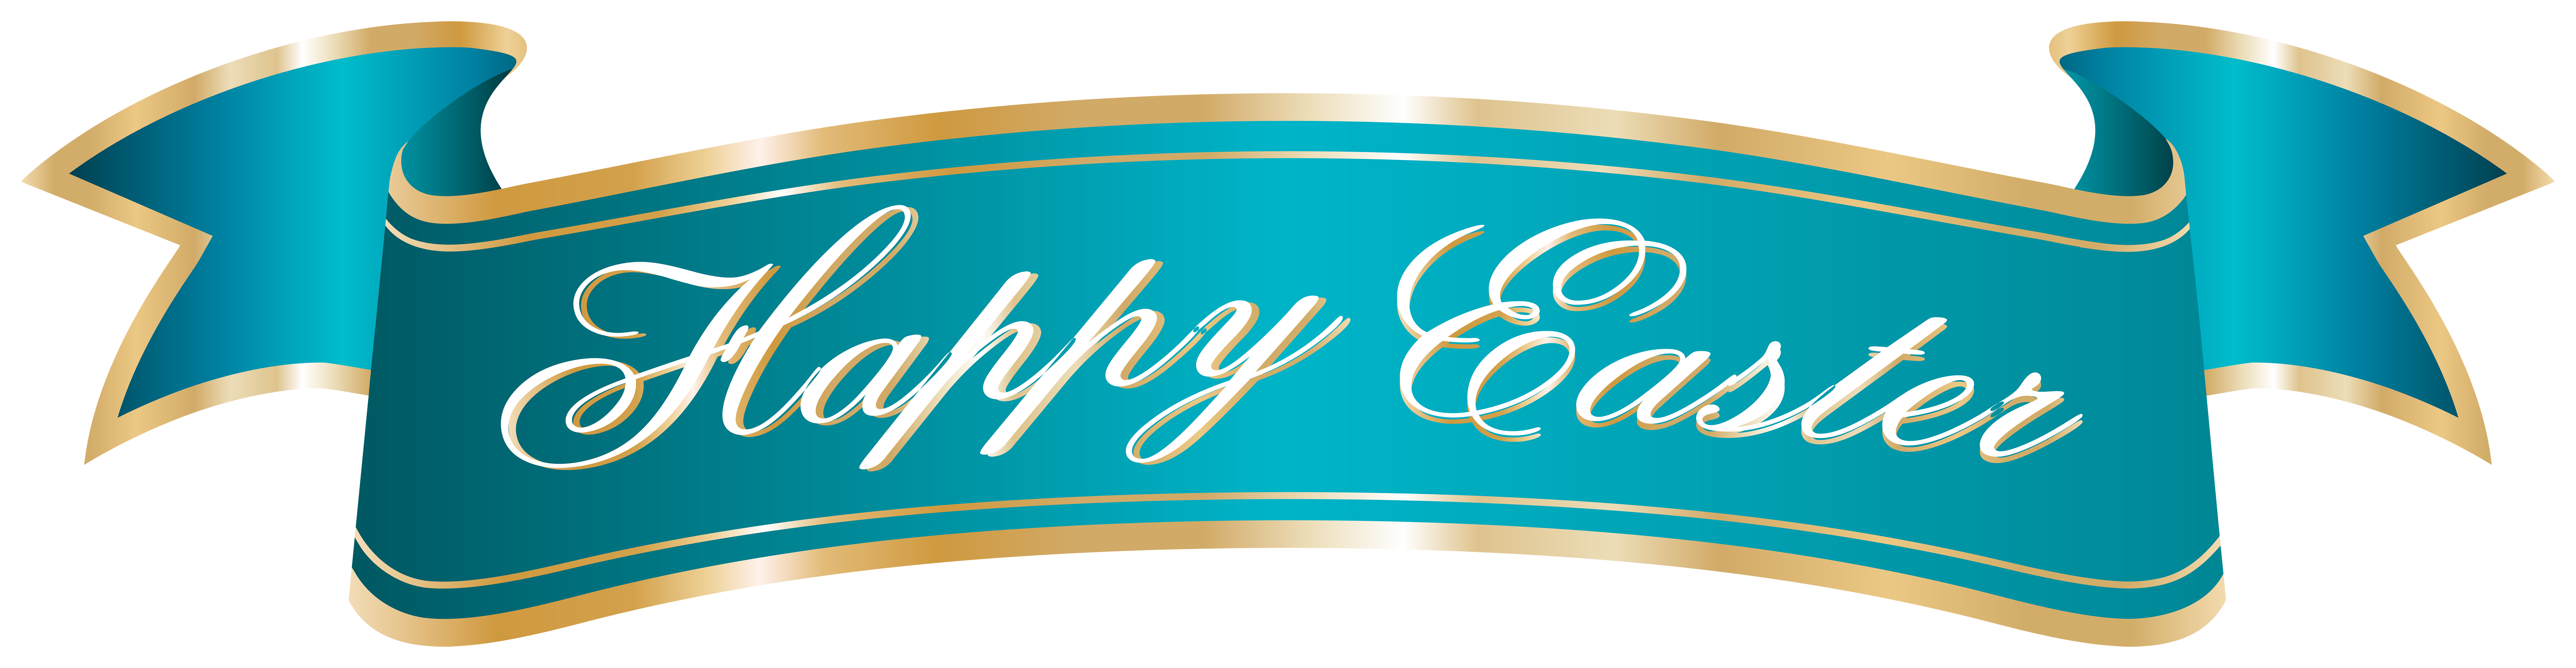 Happy easter clipart green. Banner png clip art